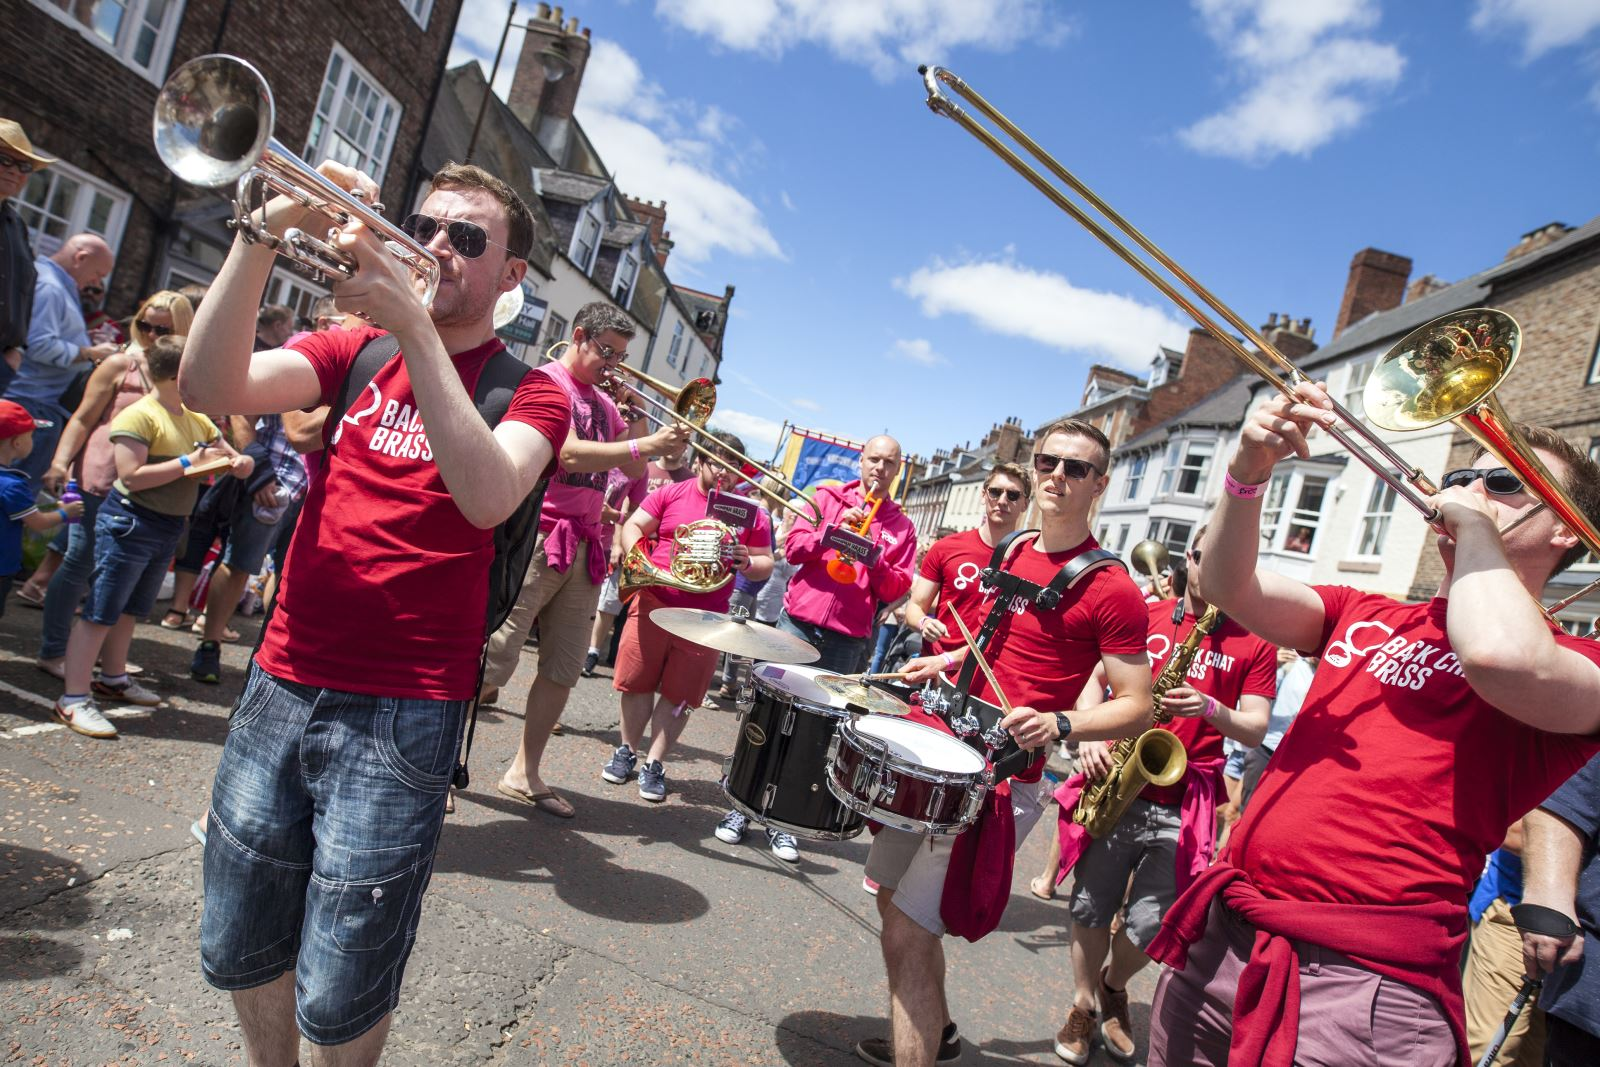 Durham BRASS Festival 2017 in the streets of the city